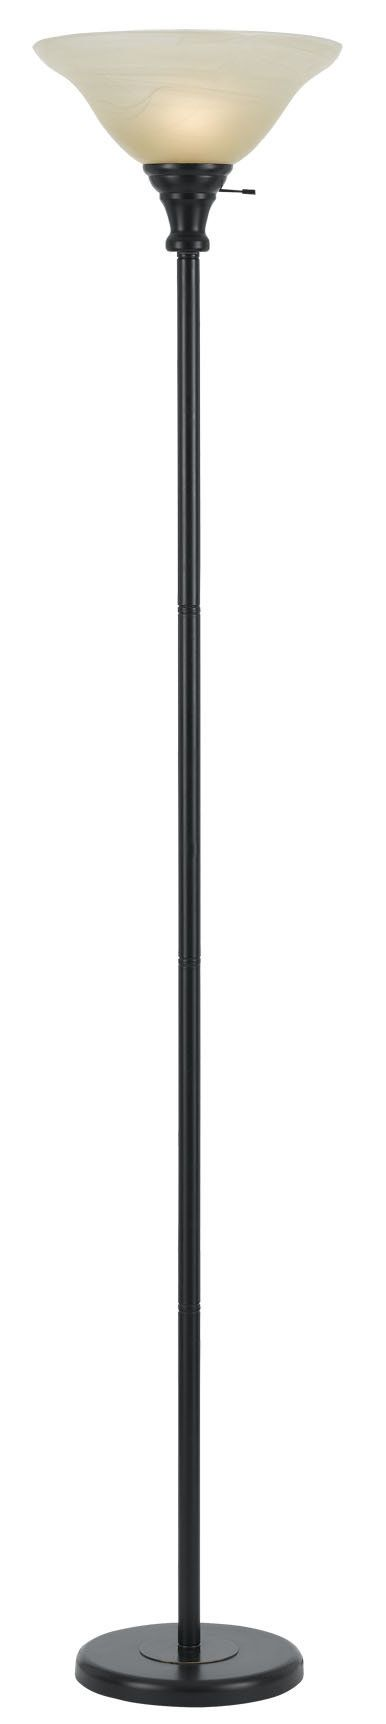 "Sagers 70"" Torchiere Floor Lamp"